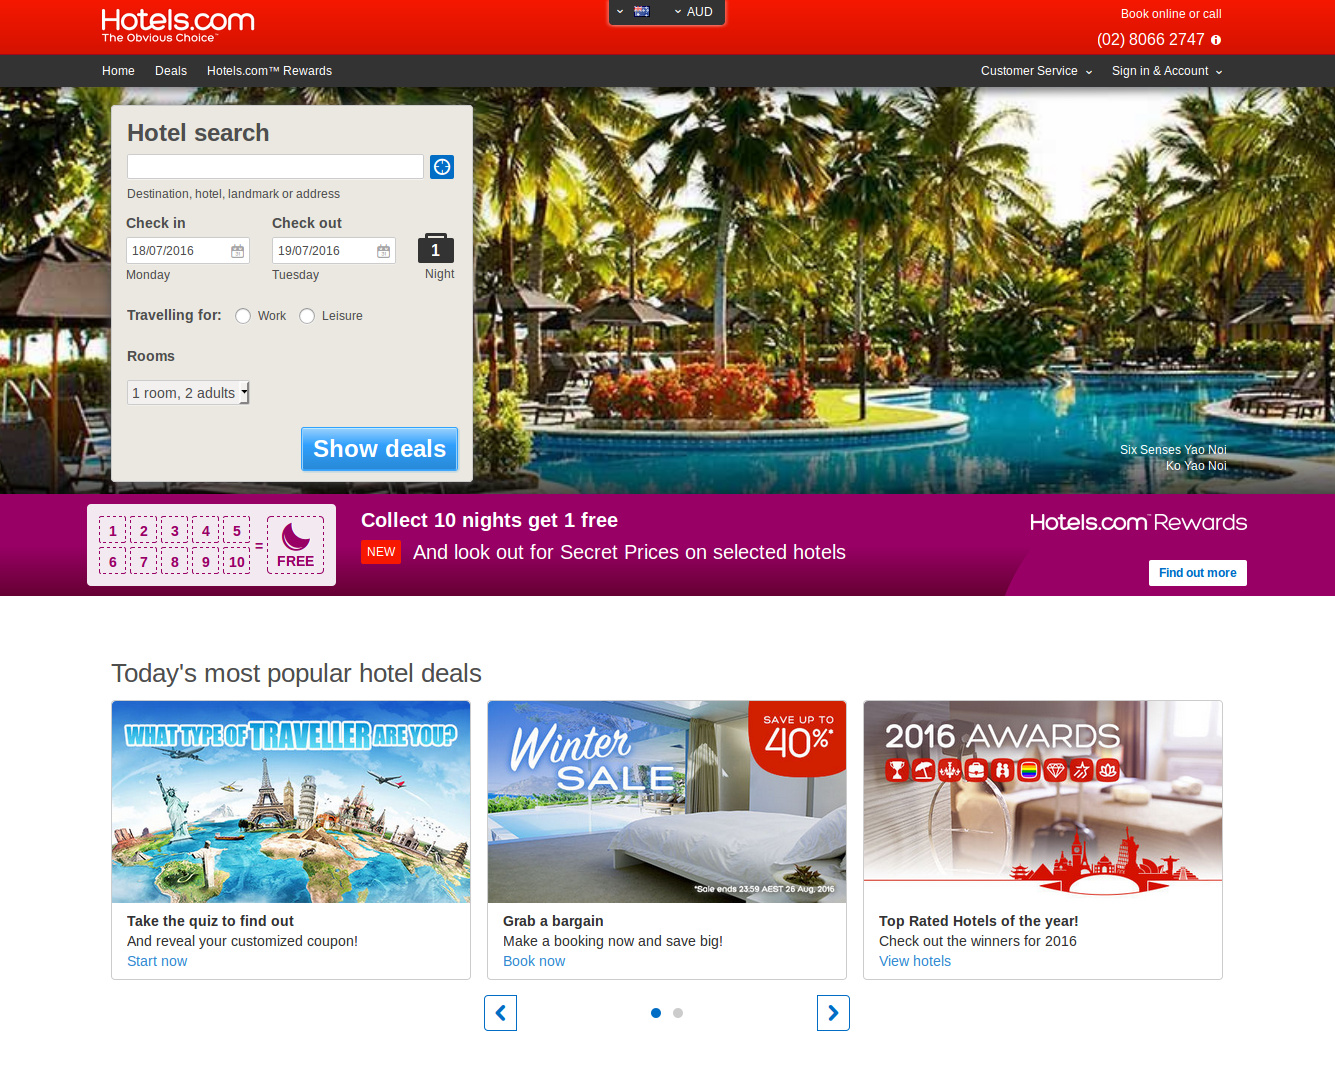 Hotels.com deals on hotels